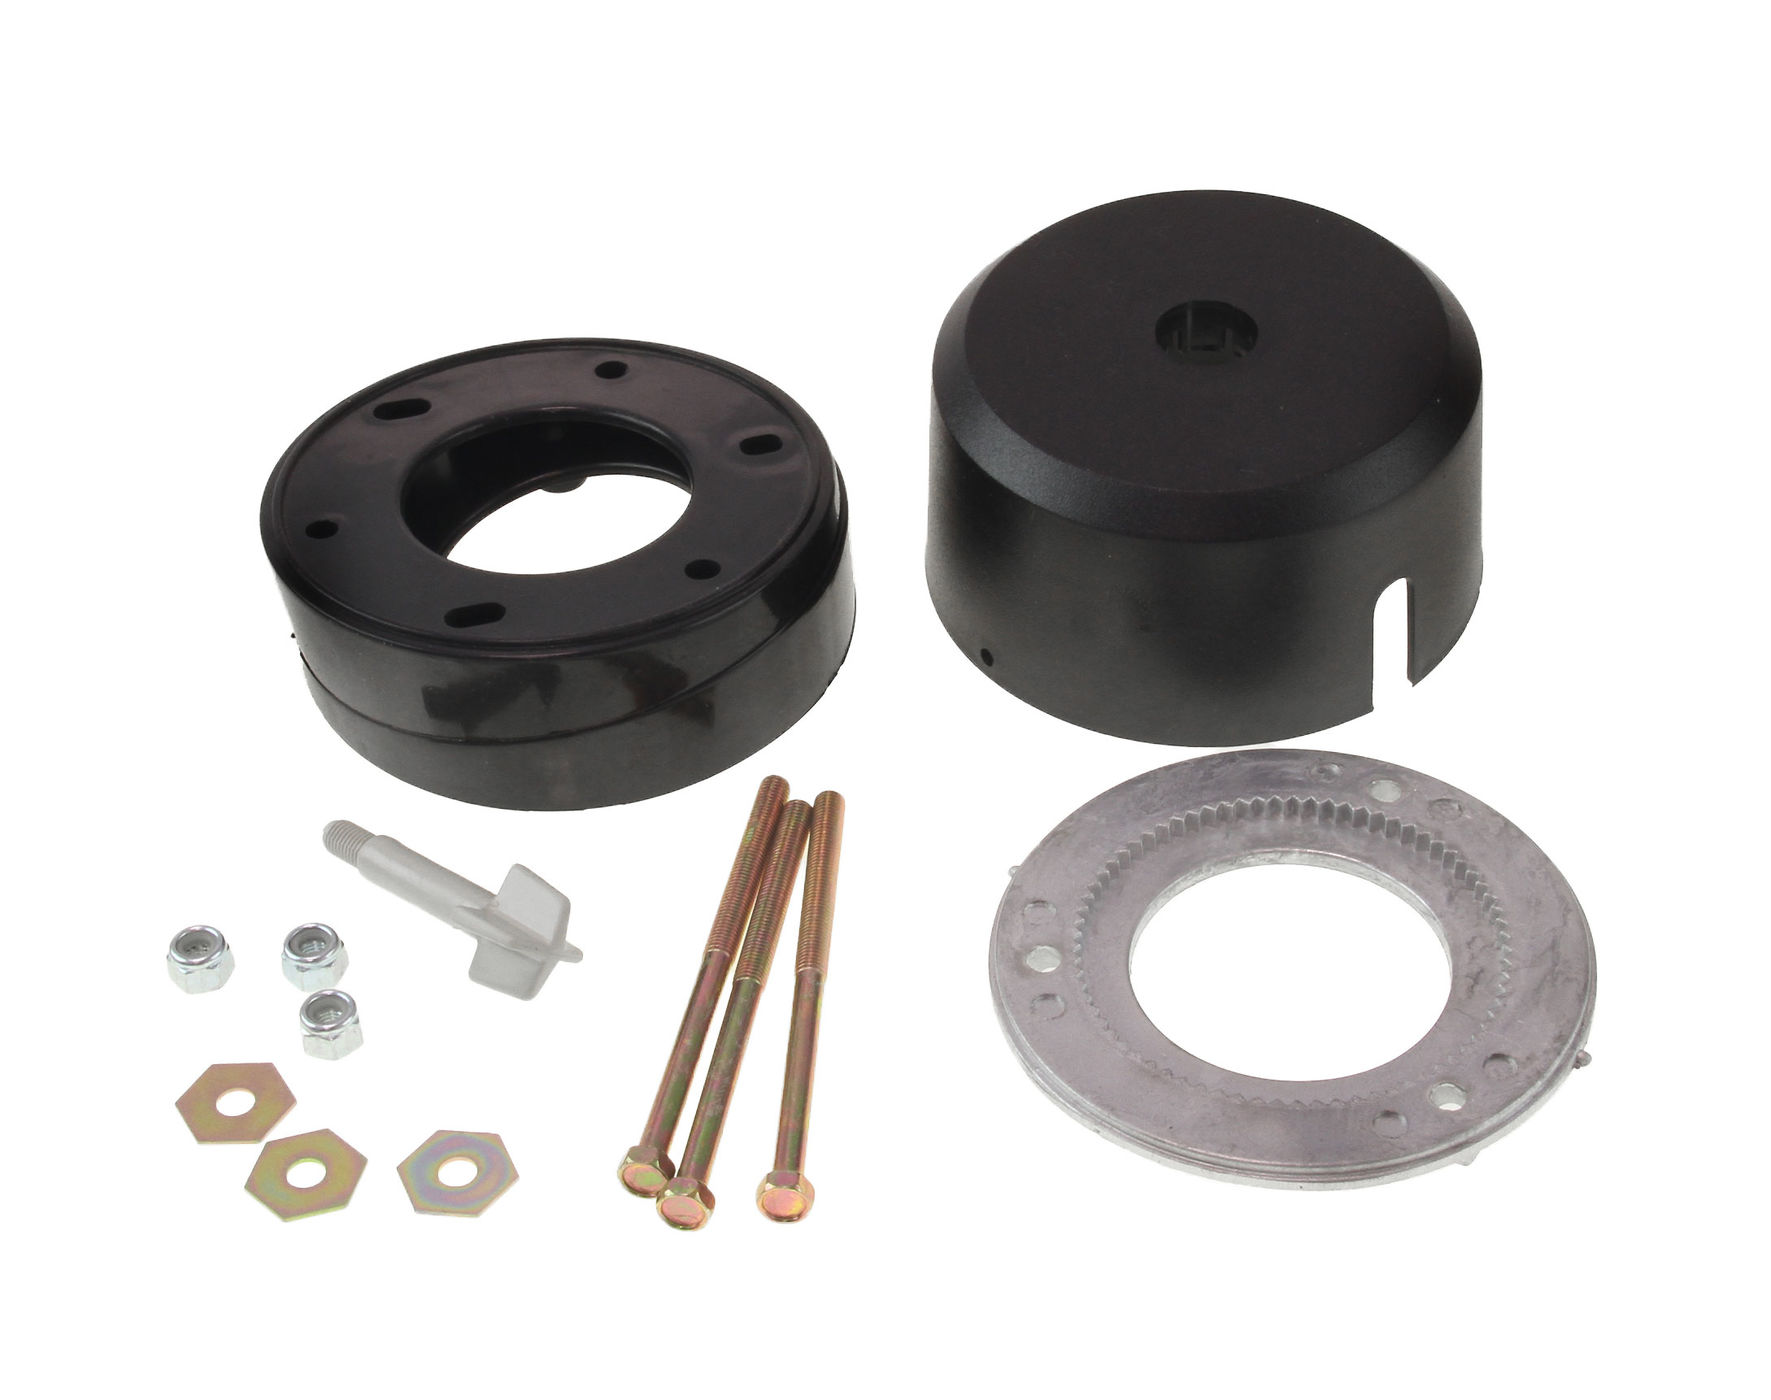 Kit Set 20 Degree For Rack And Pinion Steering Gear 370470